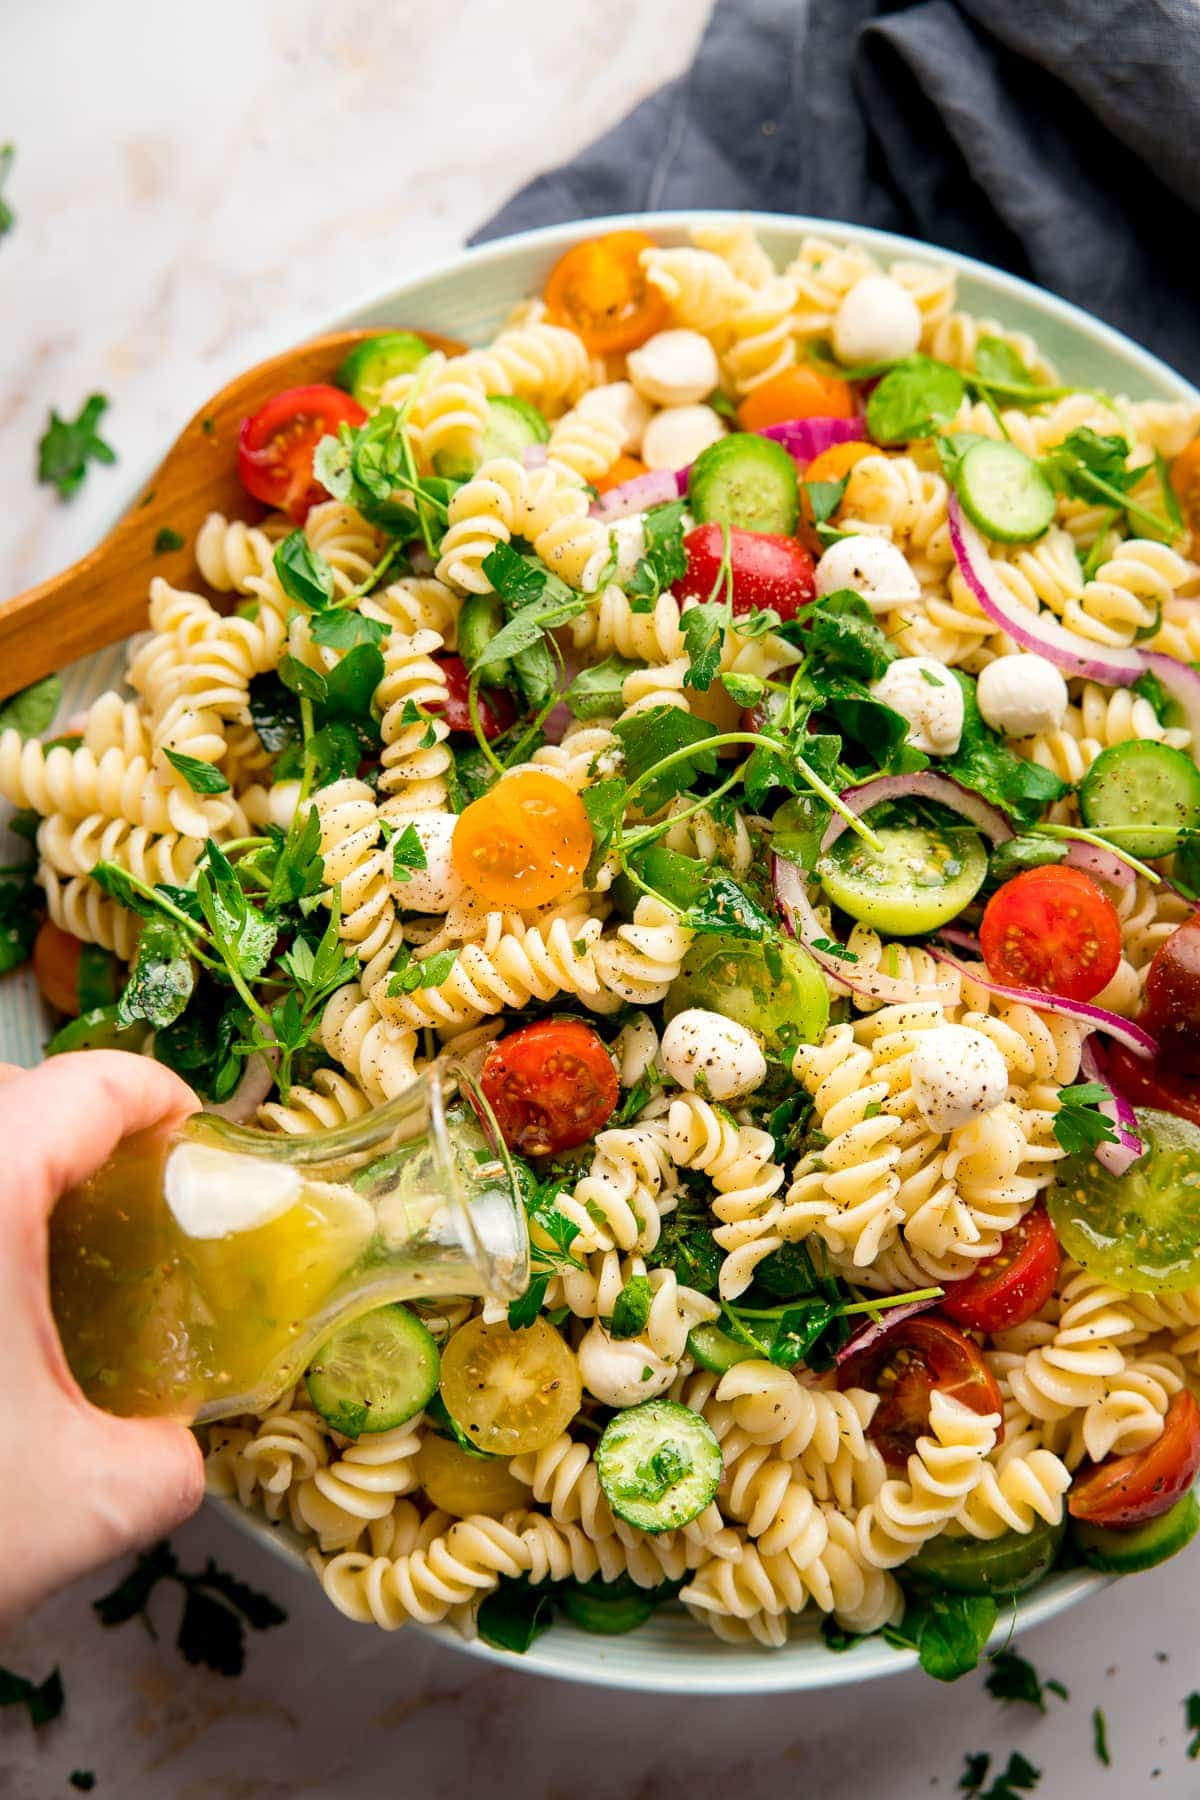 Italian dressing being poured onto a bowl of pasta salad